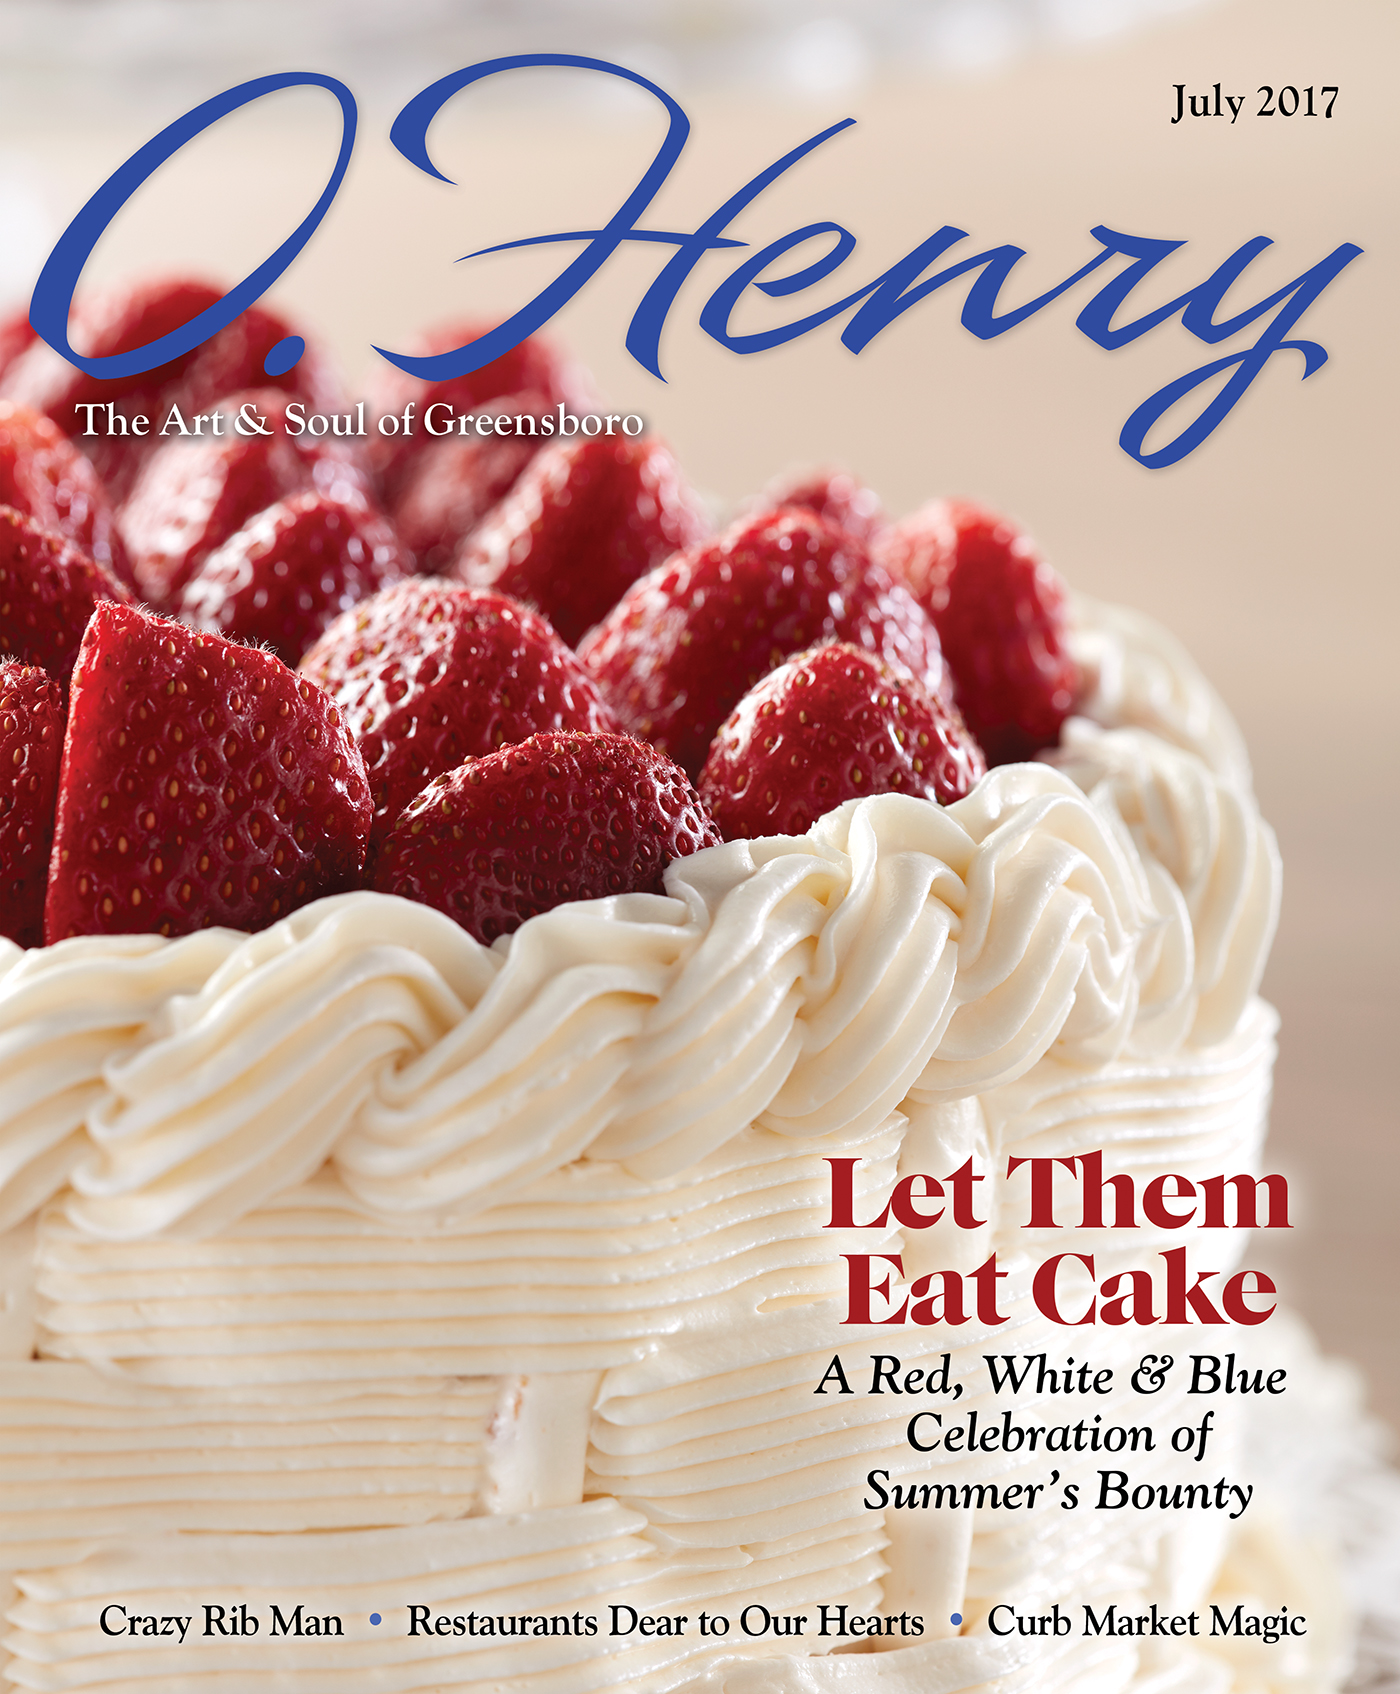 o.henry-cover-july-facebook